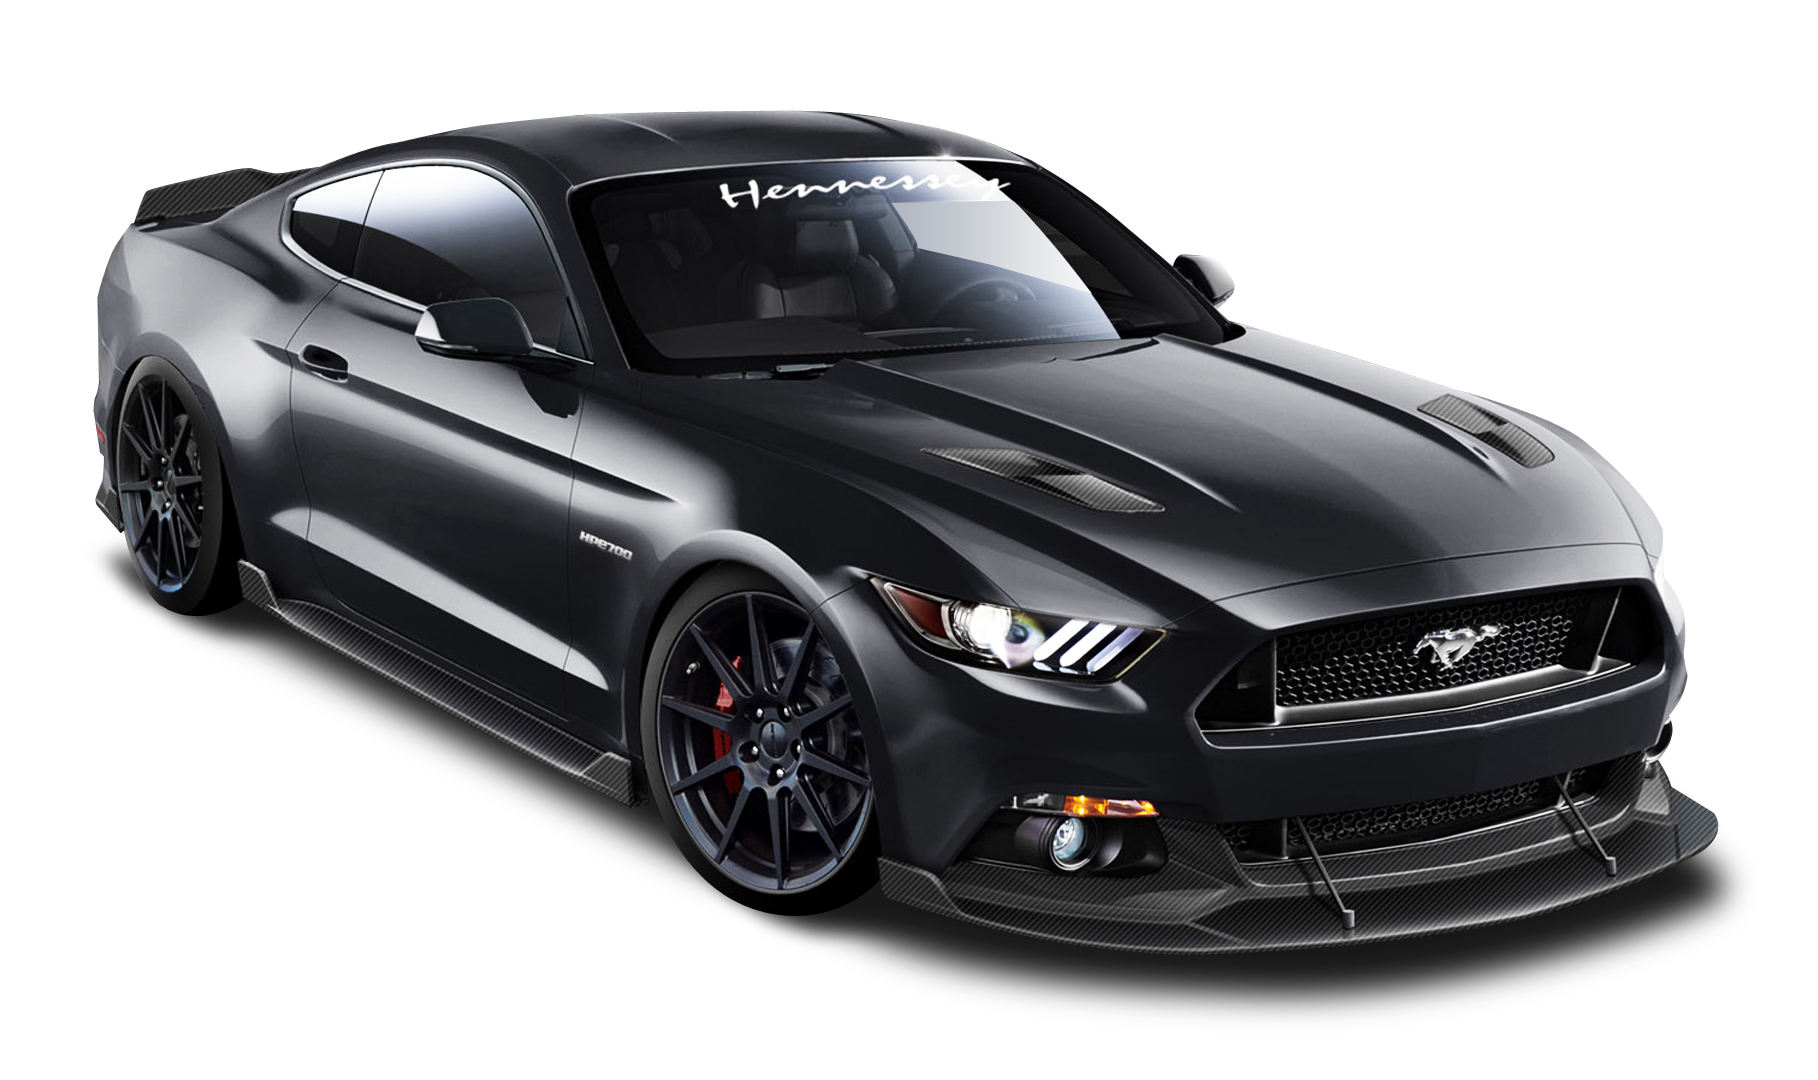 Ford Mustang Hennessey Black Car Png Image Ford Mustang Black Camaro Black Honda